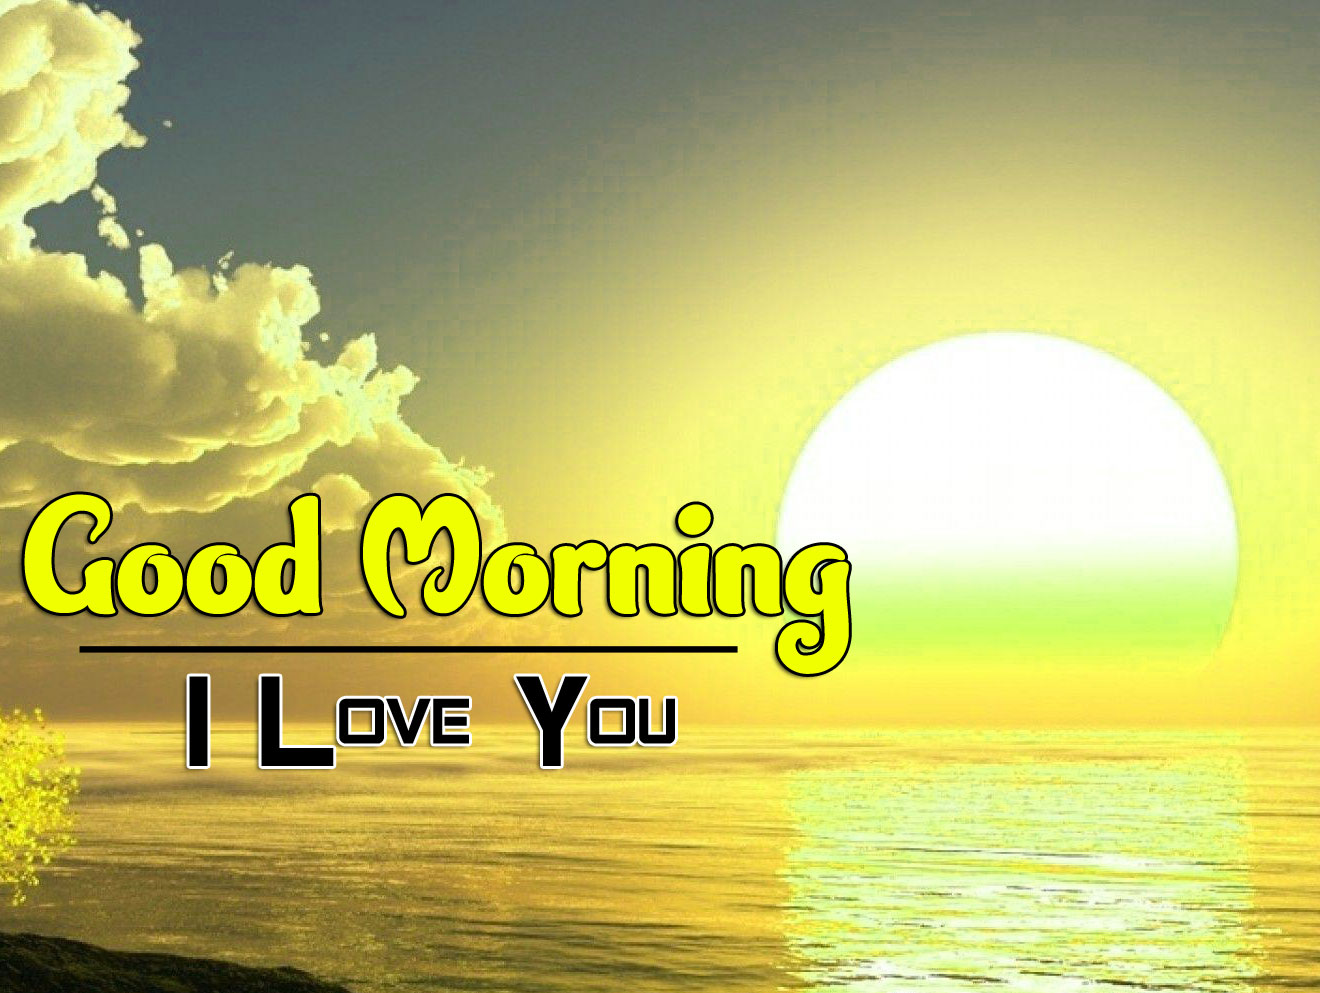 good morning images wallpaper for facebook